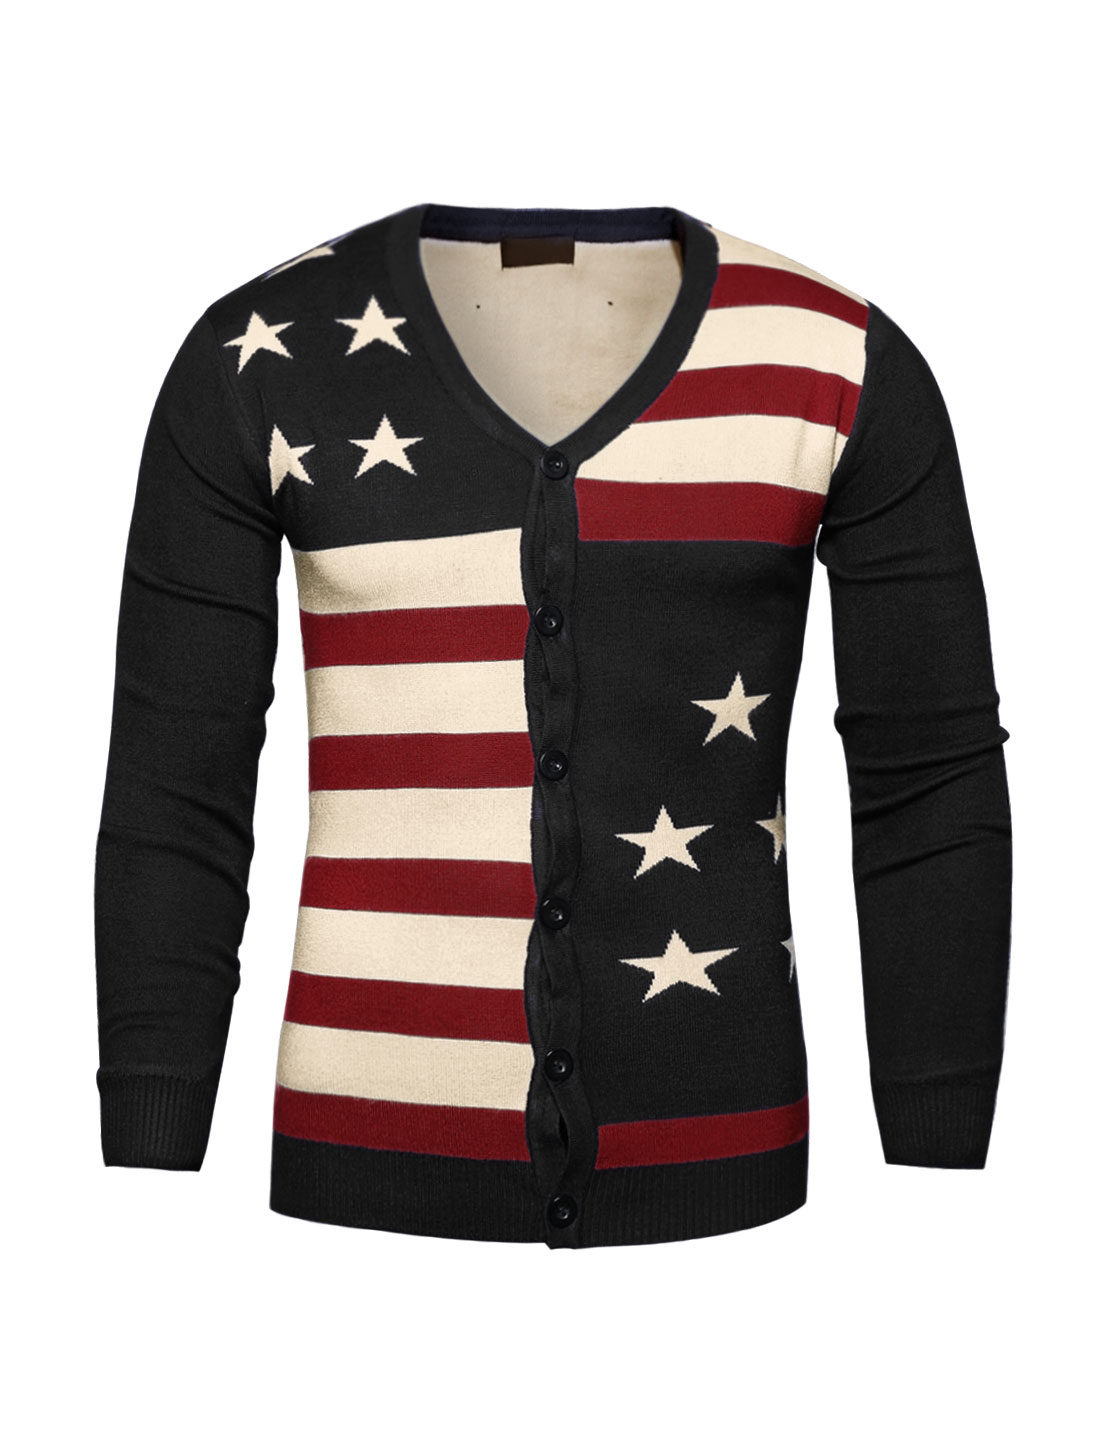 Man Contrast Color Striped Stars Knit Cardigan Black S